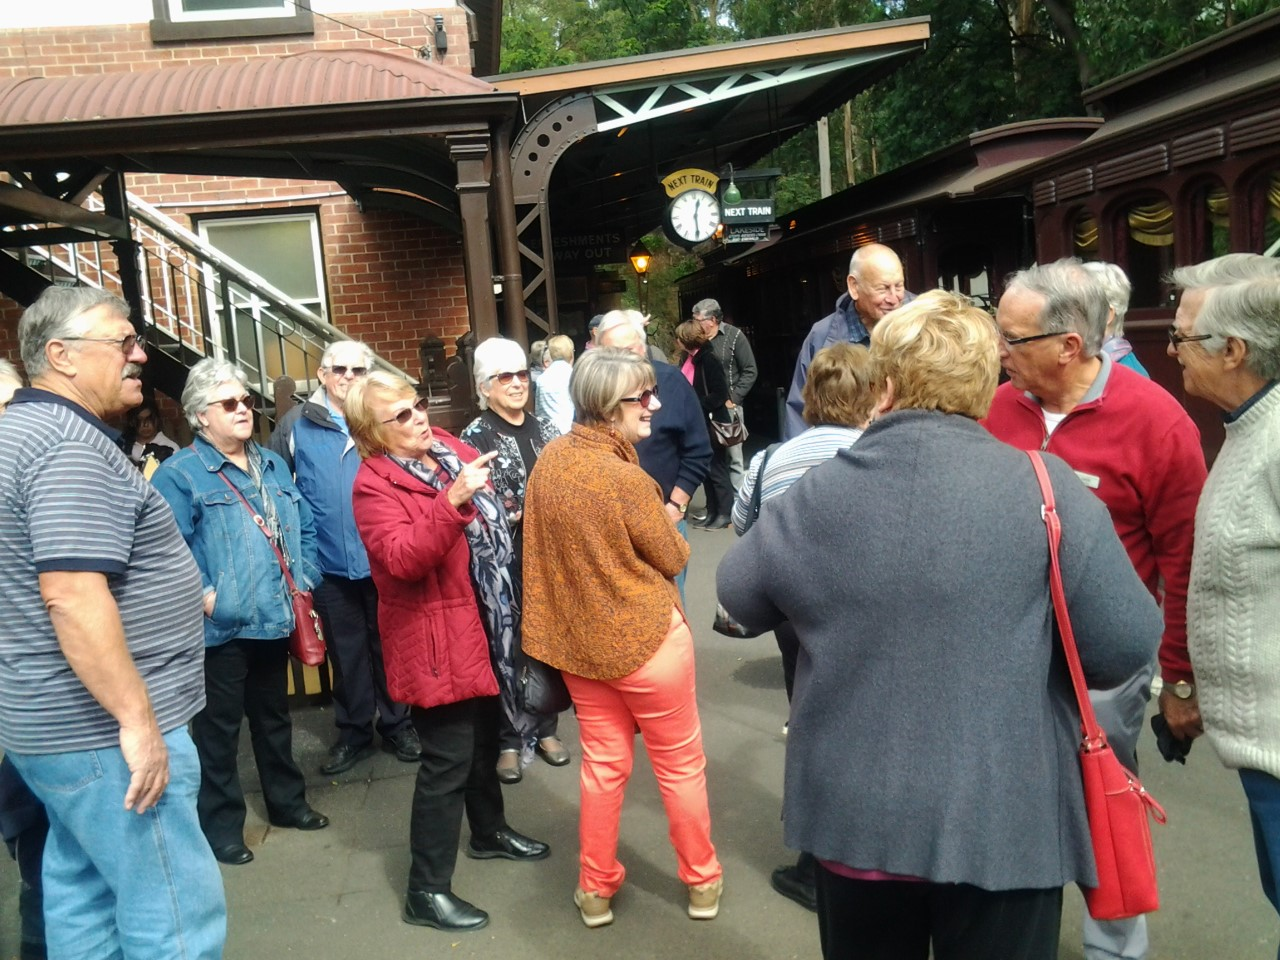 Trip to Puffing Billy